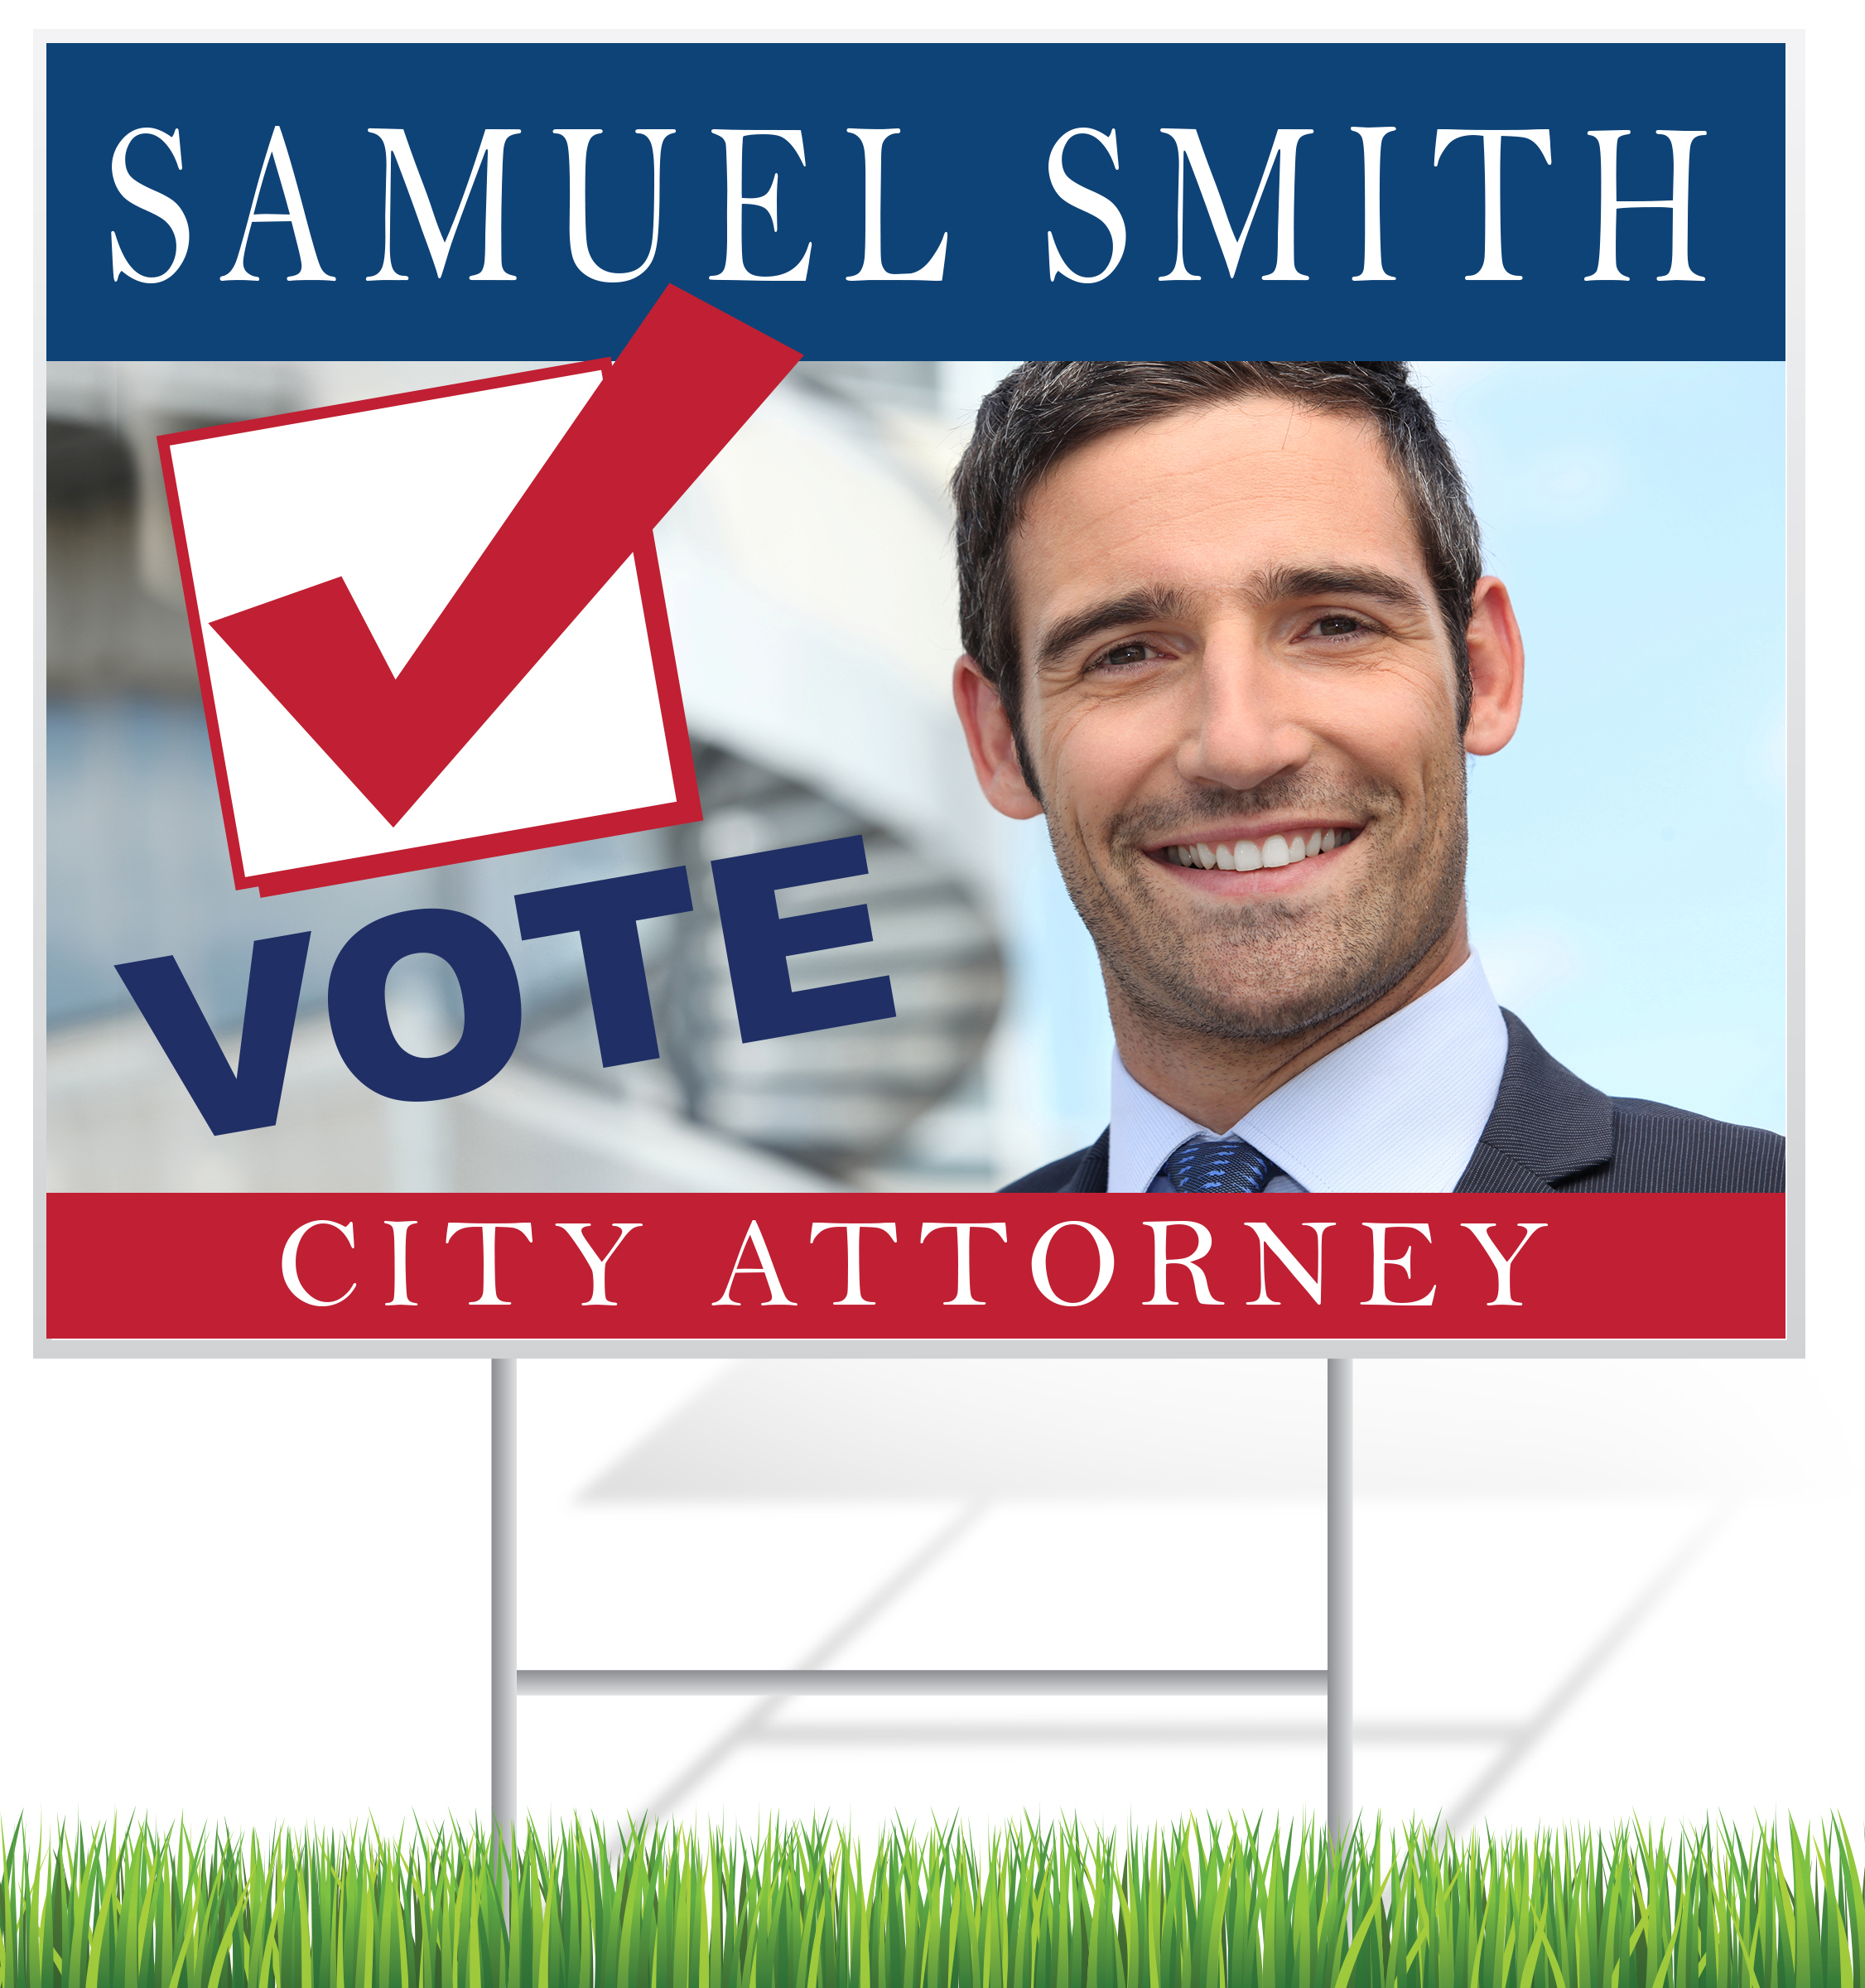 Election Lawn Sign Example | LawnSigns.com